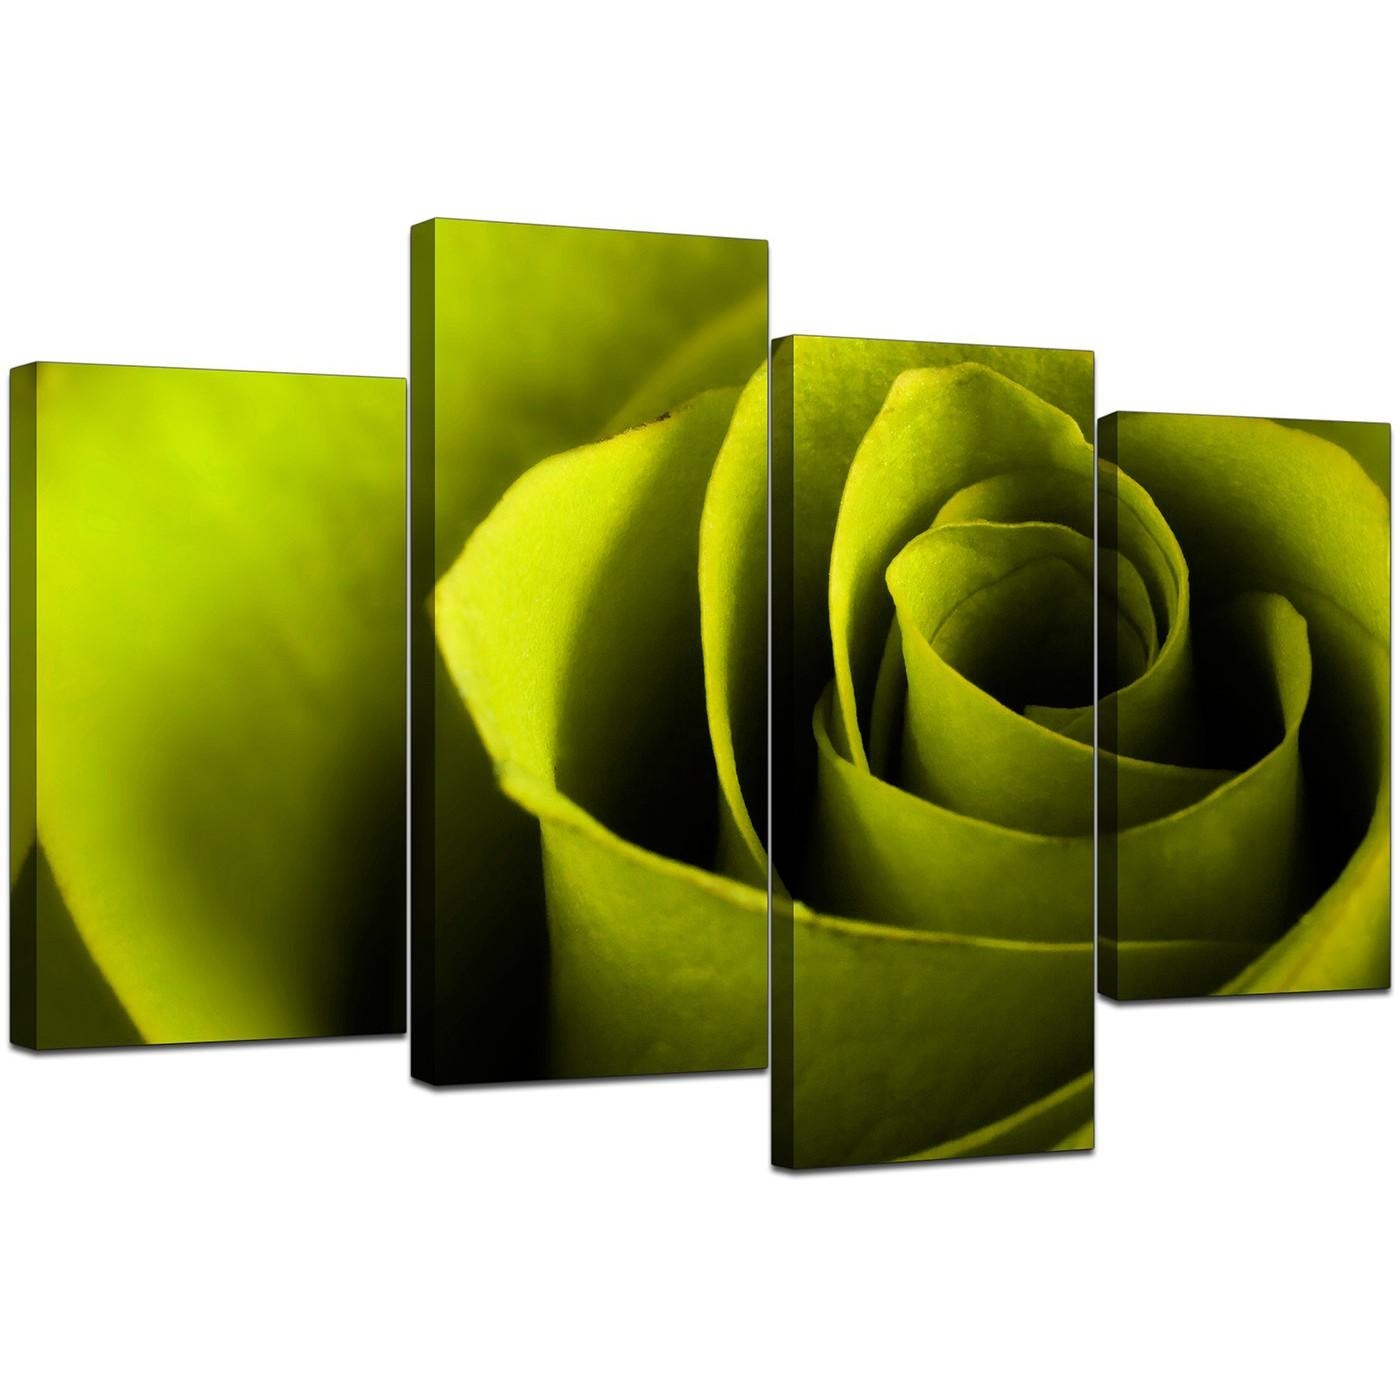 Canvas Wall Art Of A Rose In Green For Your Living Room Within Green Canvas Wall Art (View 2 of 20)